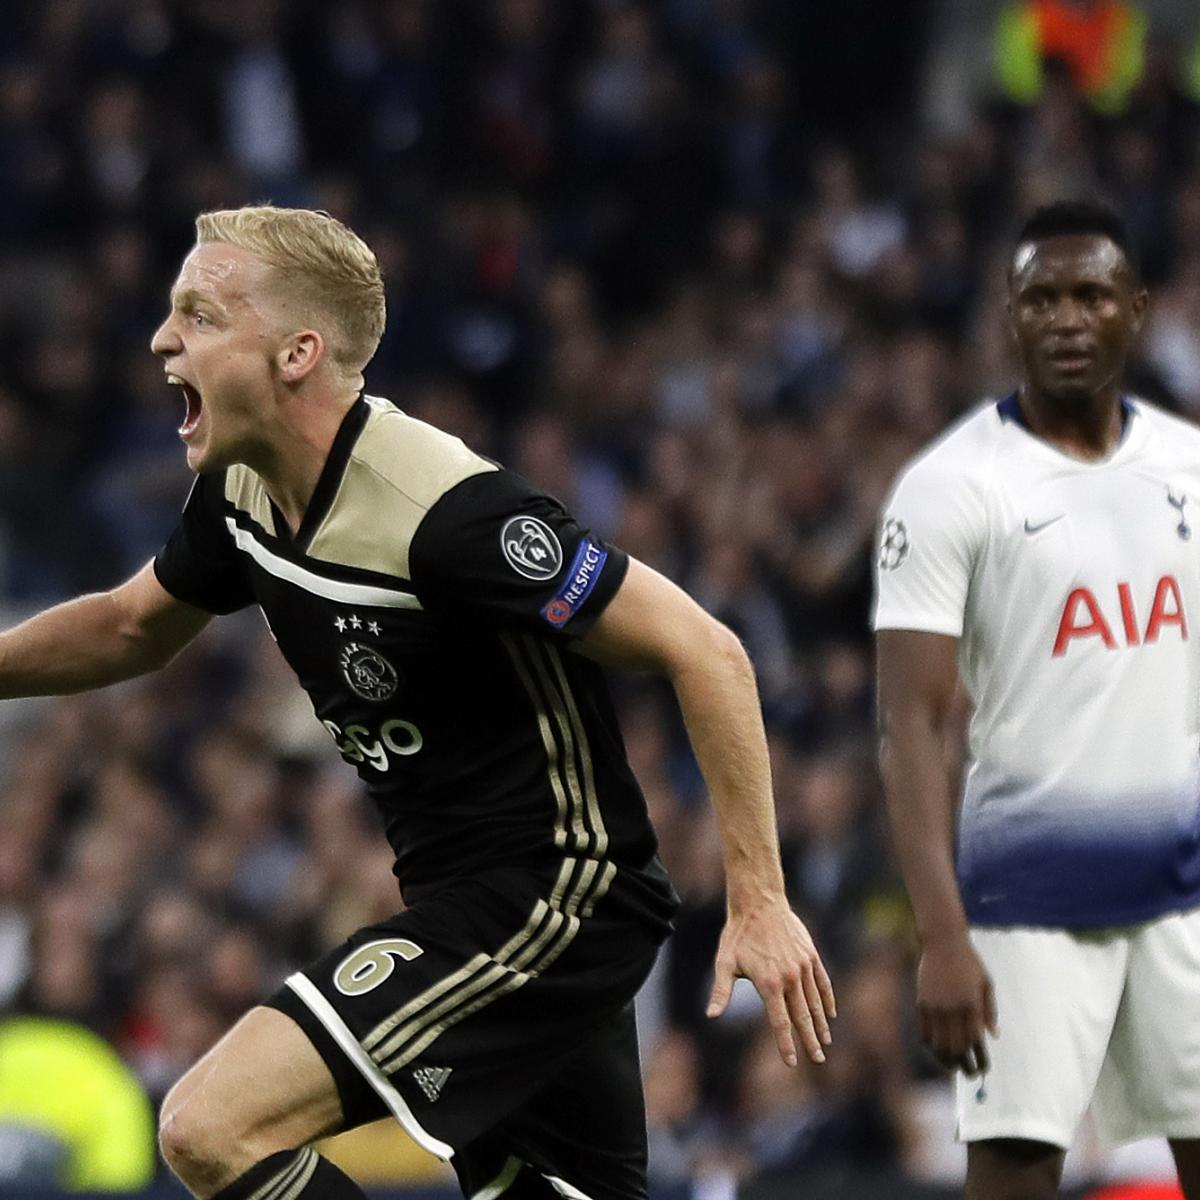 Tottenham Vs Ajax Tickets Away End: Donny Van De Beek's Goal Leads Ajax To Win Vs. Tottenham